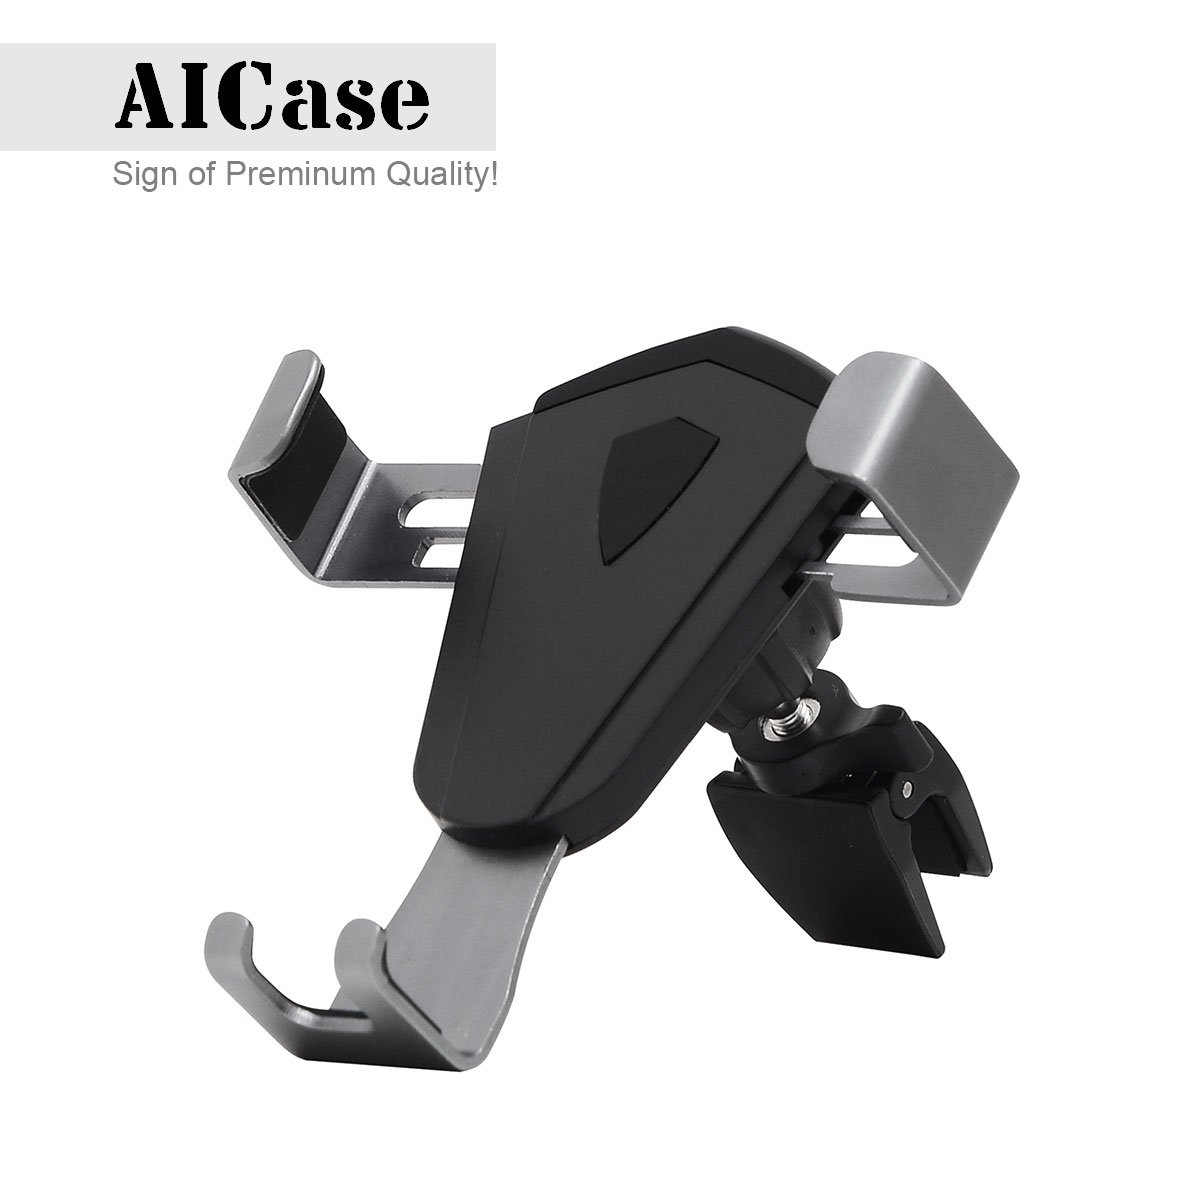 Car Phone Mount, AICase Dashboard & Windshield Car Mount Holder Strong Sticky Gel Pad with One-Touch Design Truly Universal[Compatible with Otterbox Defender Case] Auto Lock/Release(Dashboard)